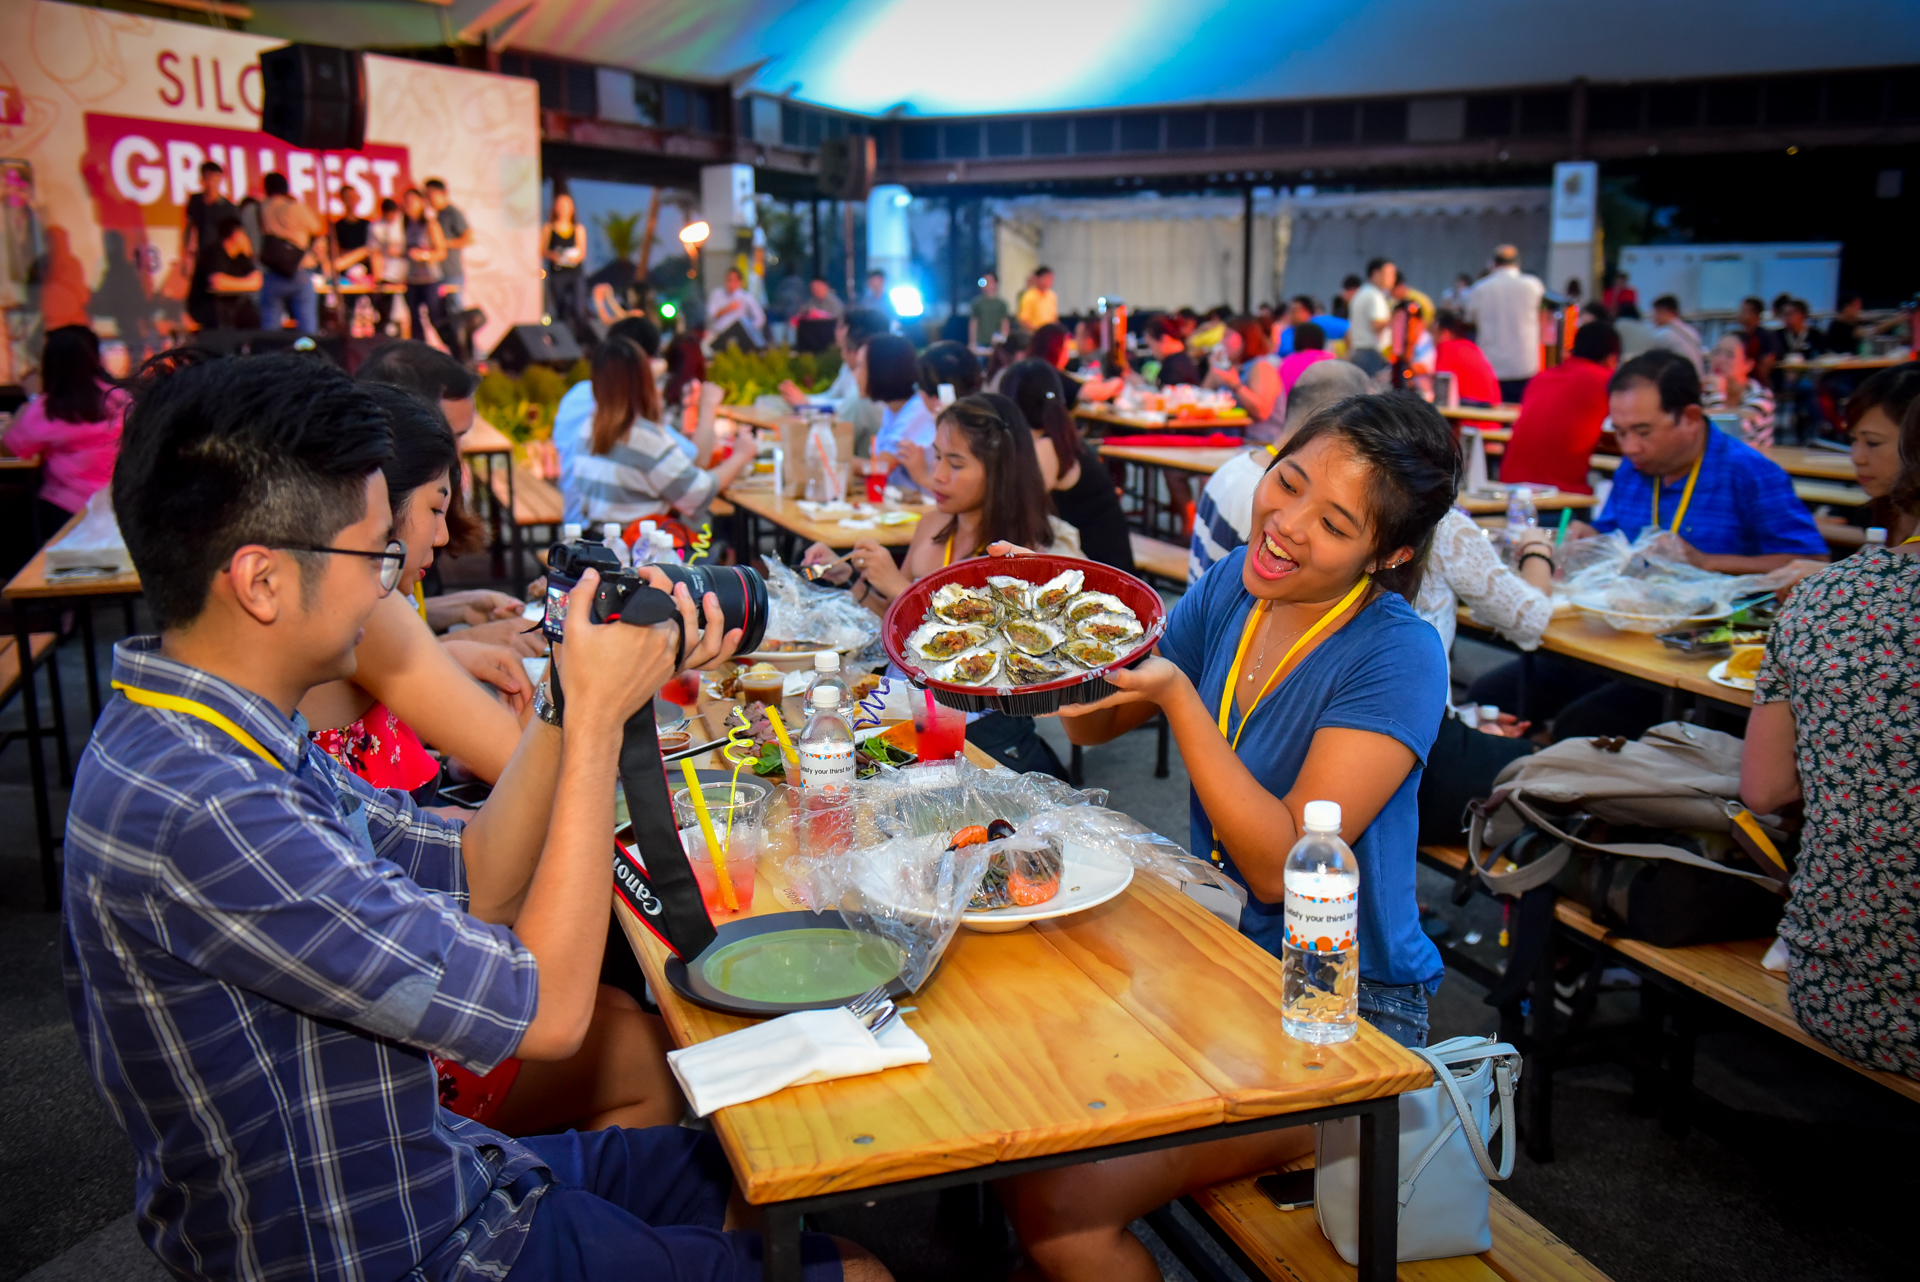 [PROMO INSIDE] Sentosa GrillFest - 1KM of exclusive menus, beer, and a 3m-tall tepee BBQ at Siloso Beach - Alvinology